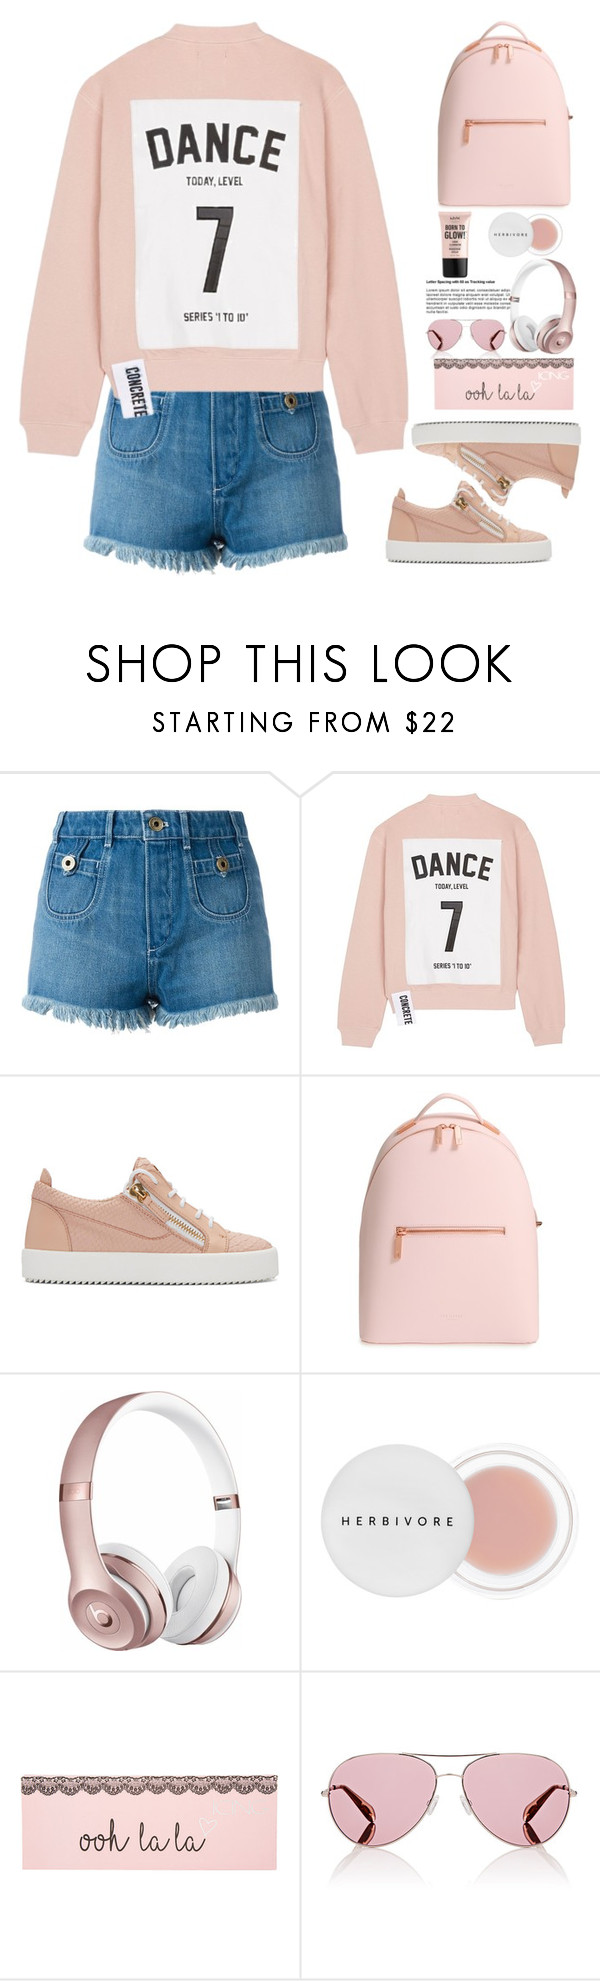 """""""Untitled #708"""" by jovana-p-com ❤ liked on Polyvore featuring Chloé, Studio Concrete, Giuseppe Zanotti, Ted Baker, Beats by Dr. Dre, Herbivore, Oliver Peoples and NYX"""